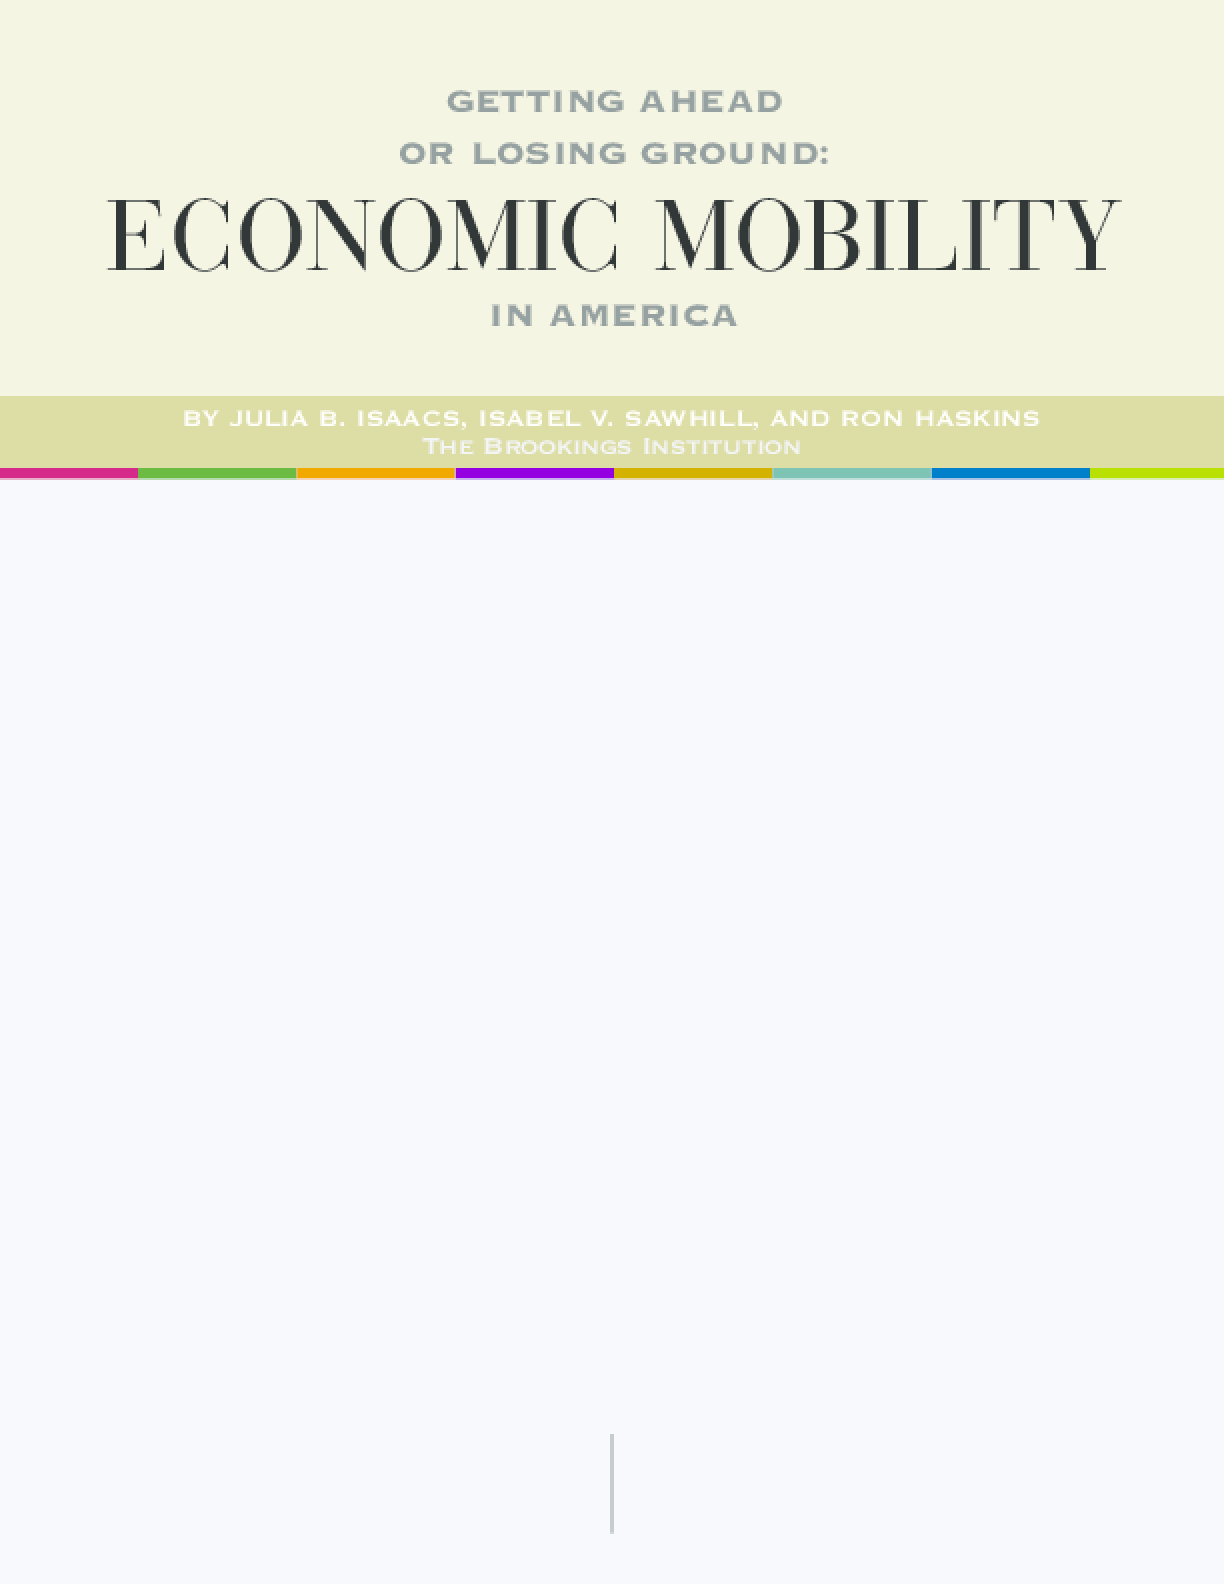 Getting Ahead or Losing Ground: Economic Mobility in America